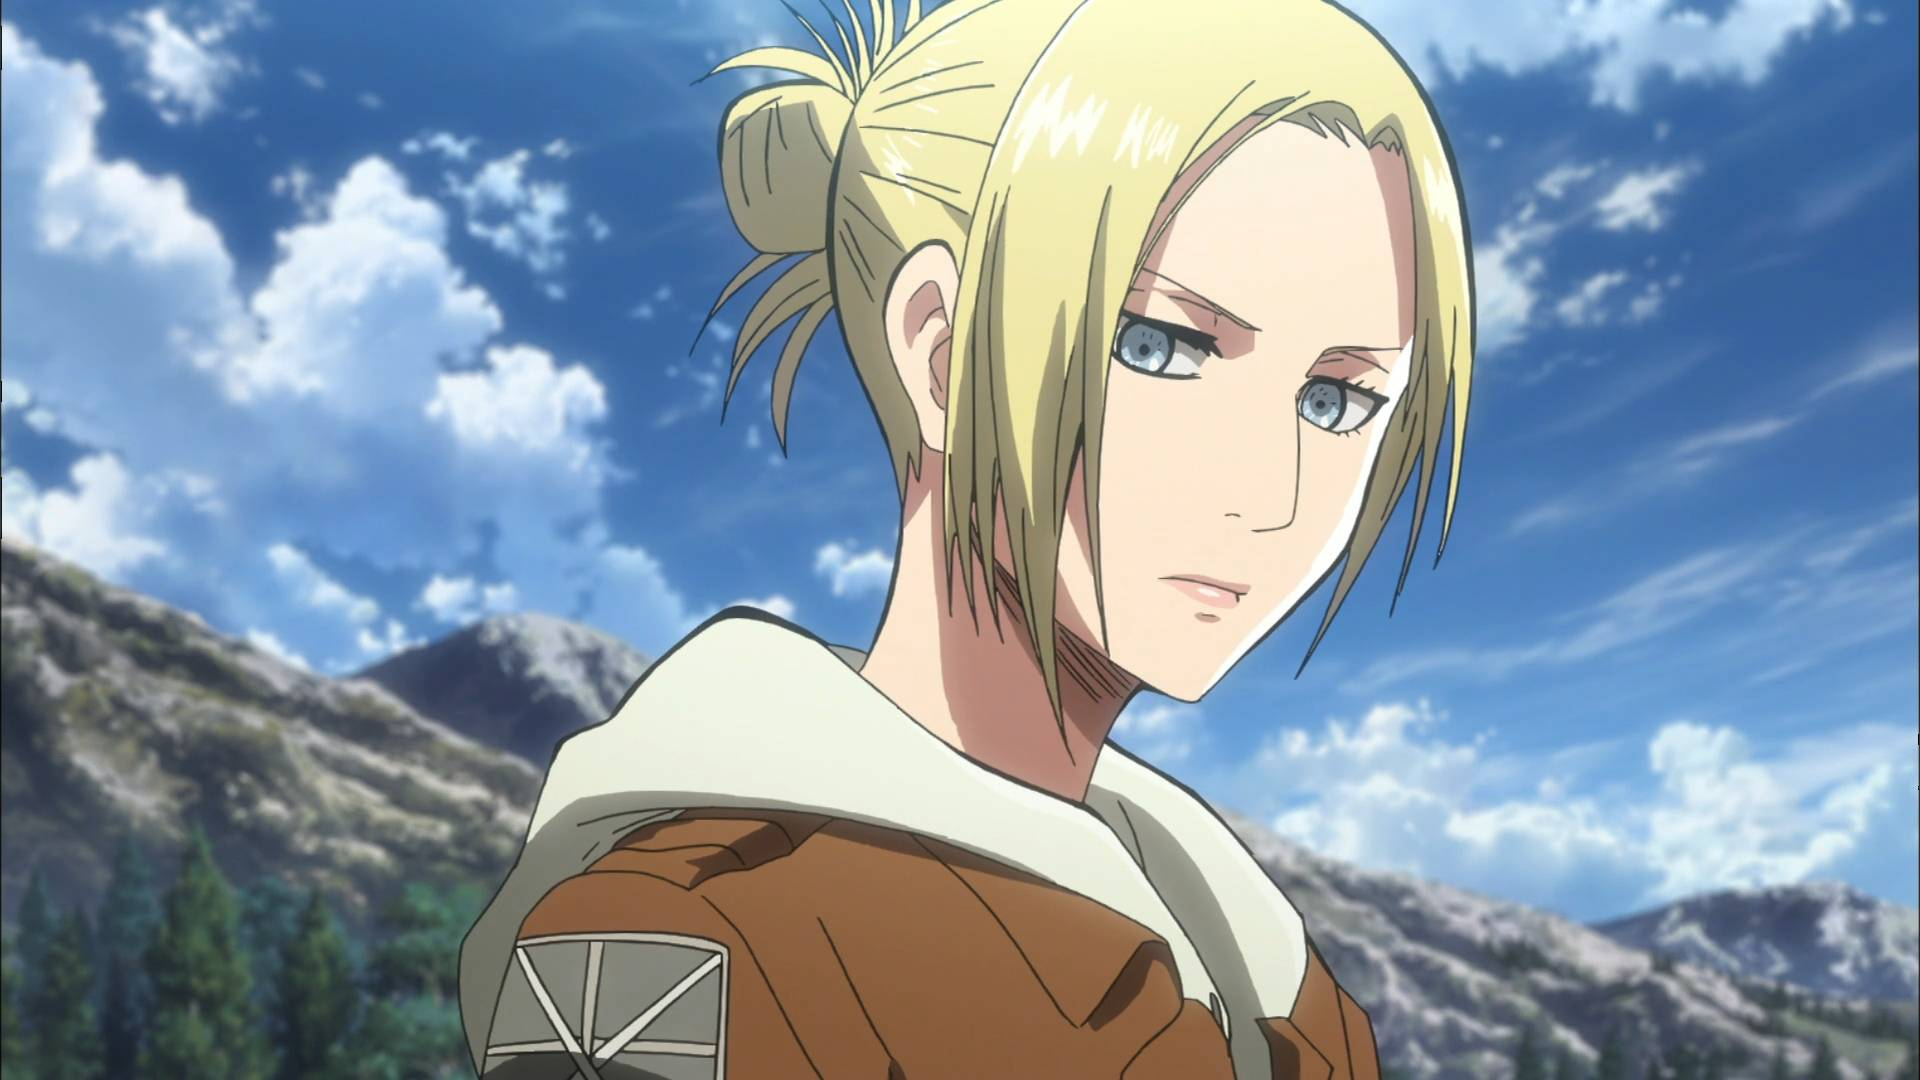 annie leonhart   Attack on Titan Wallpaper 1920x1080